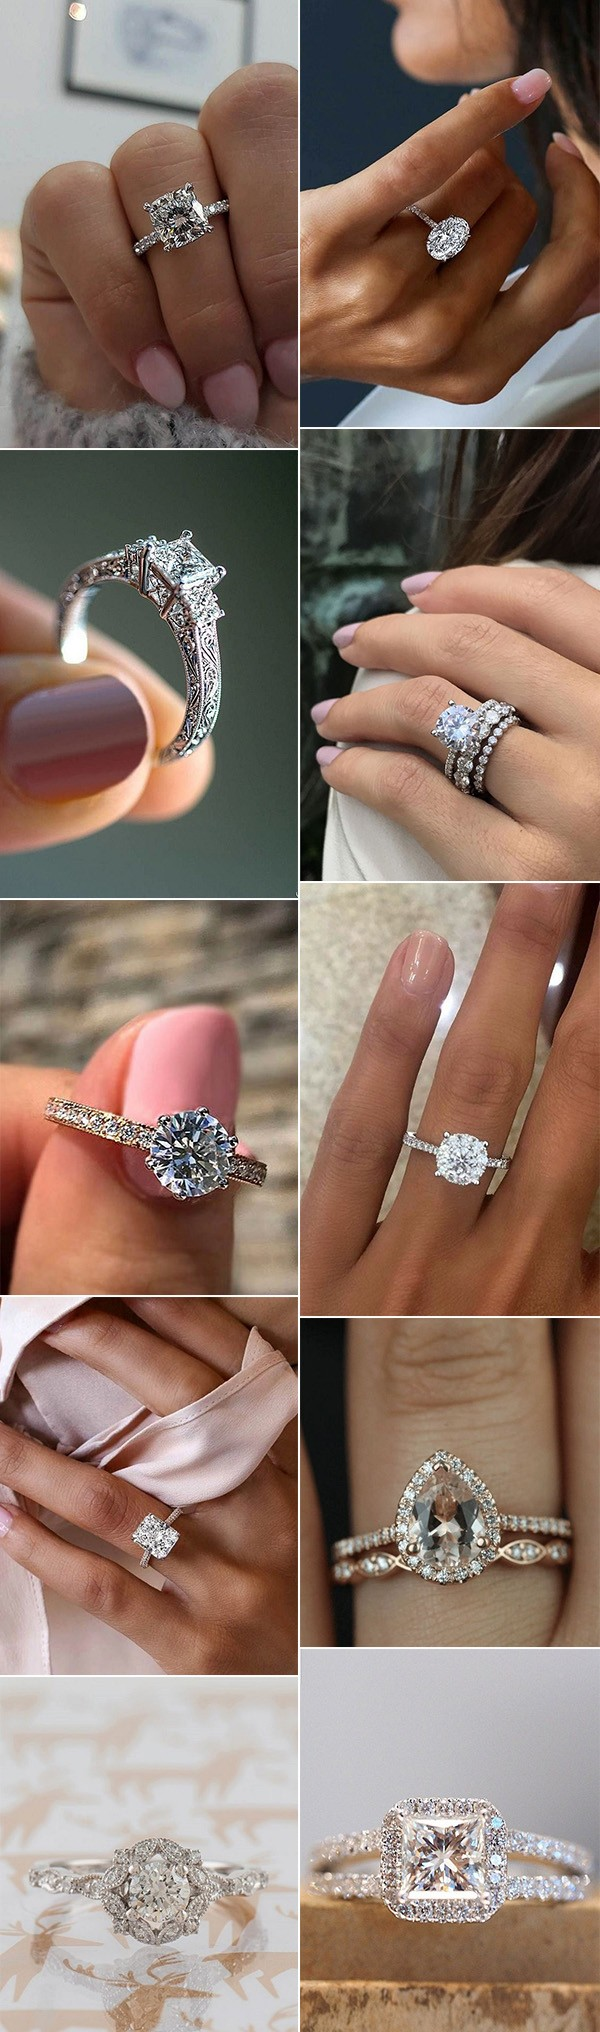 breathtaking wedding engagement rings for 2018